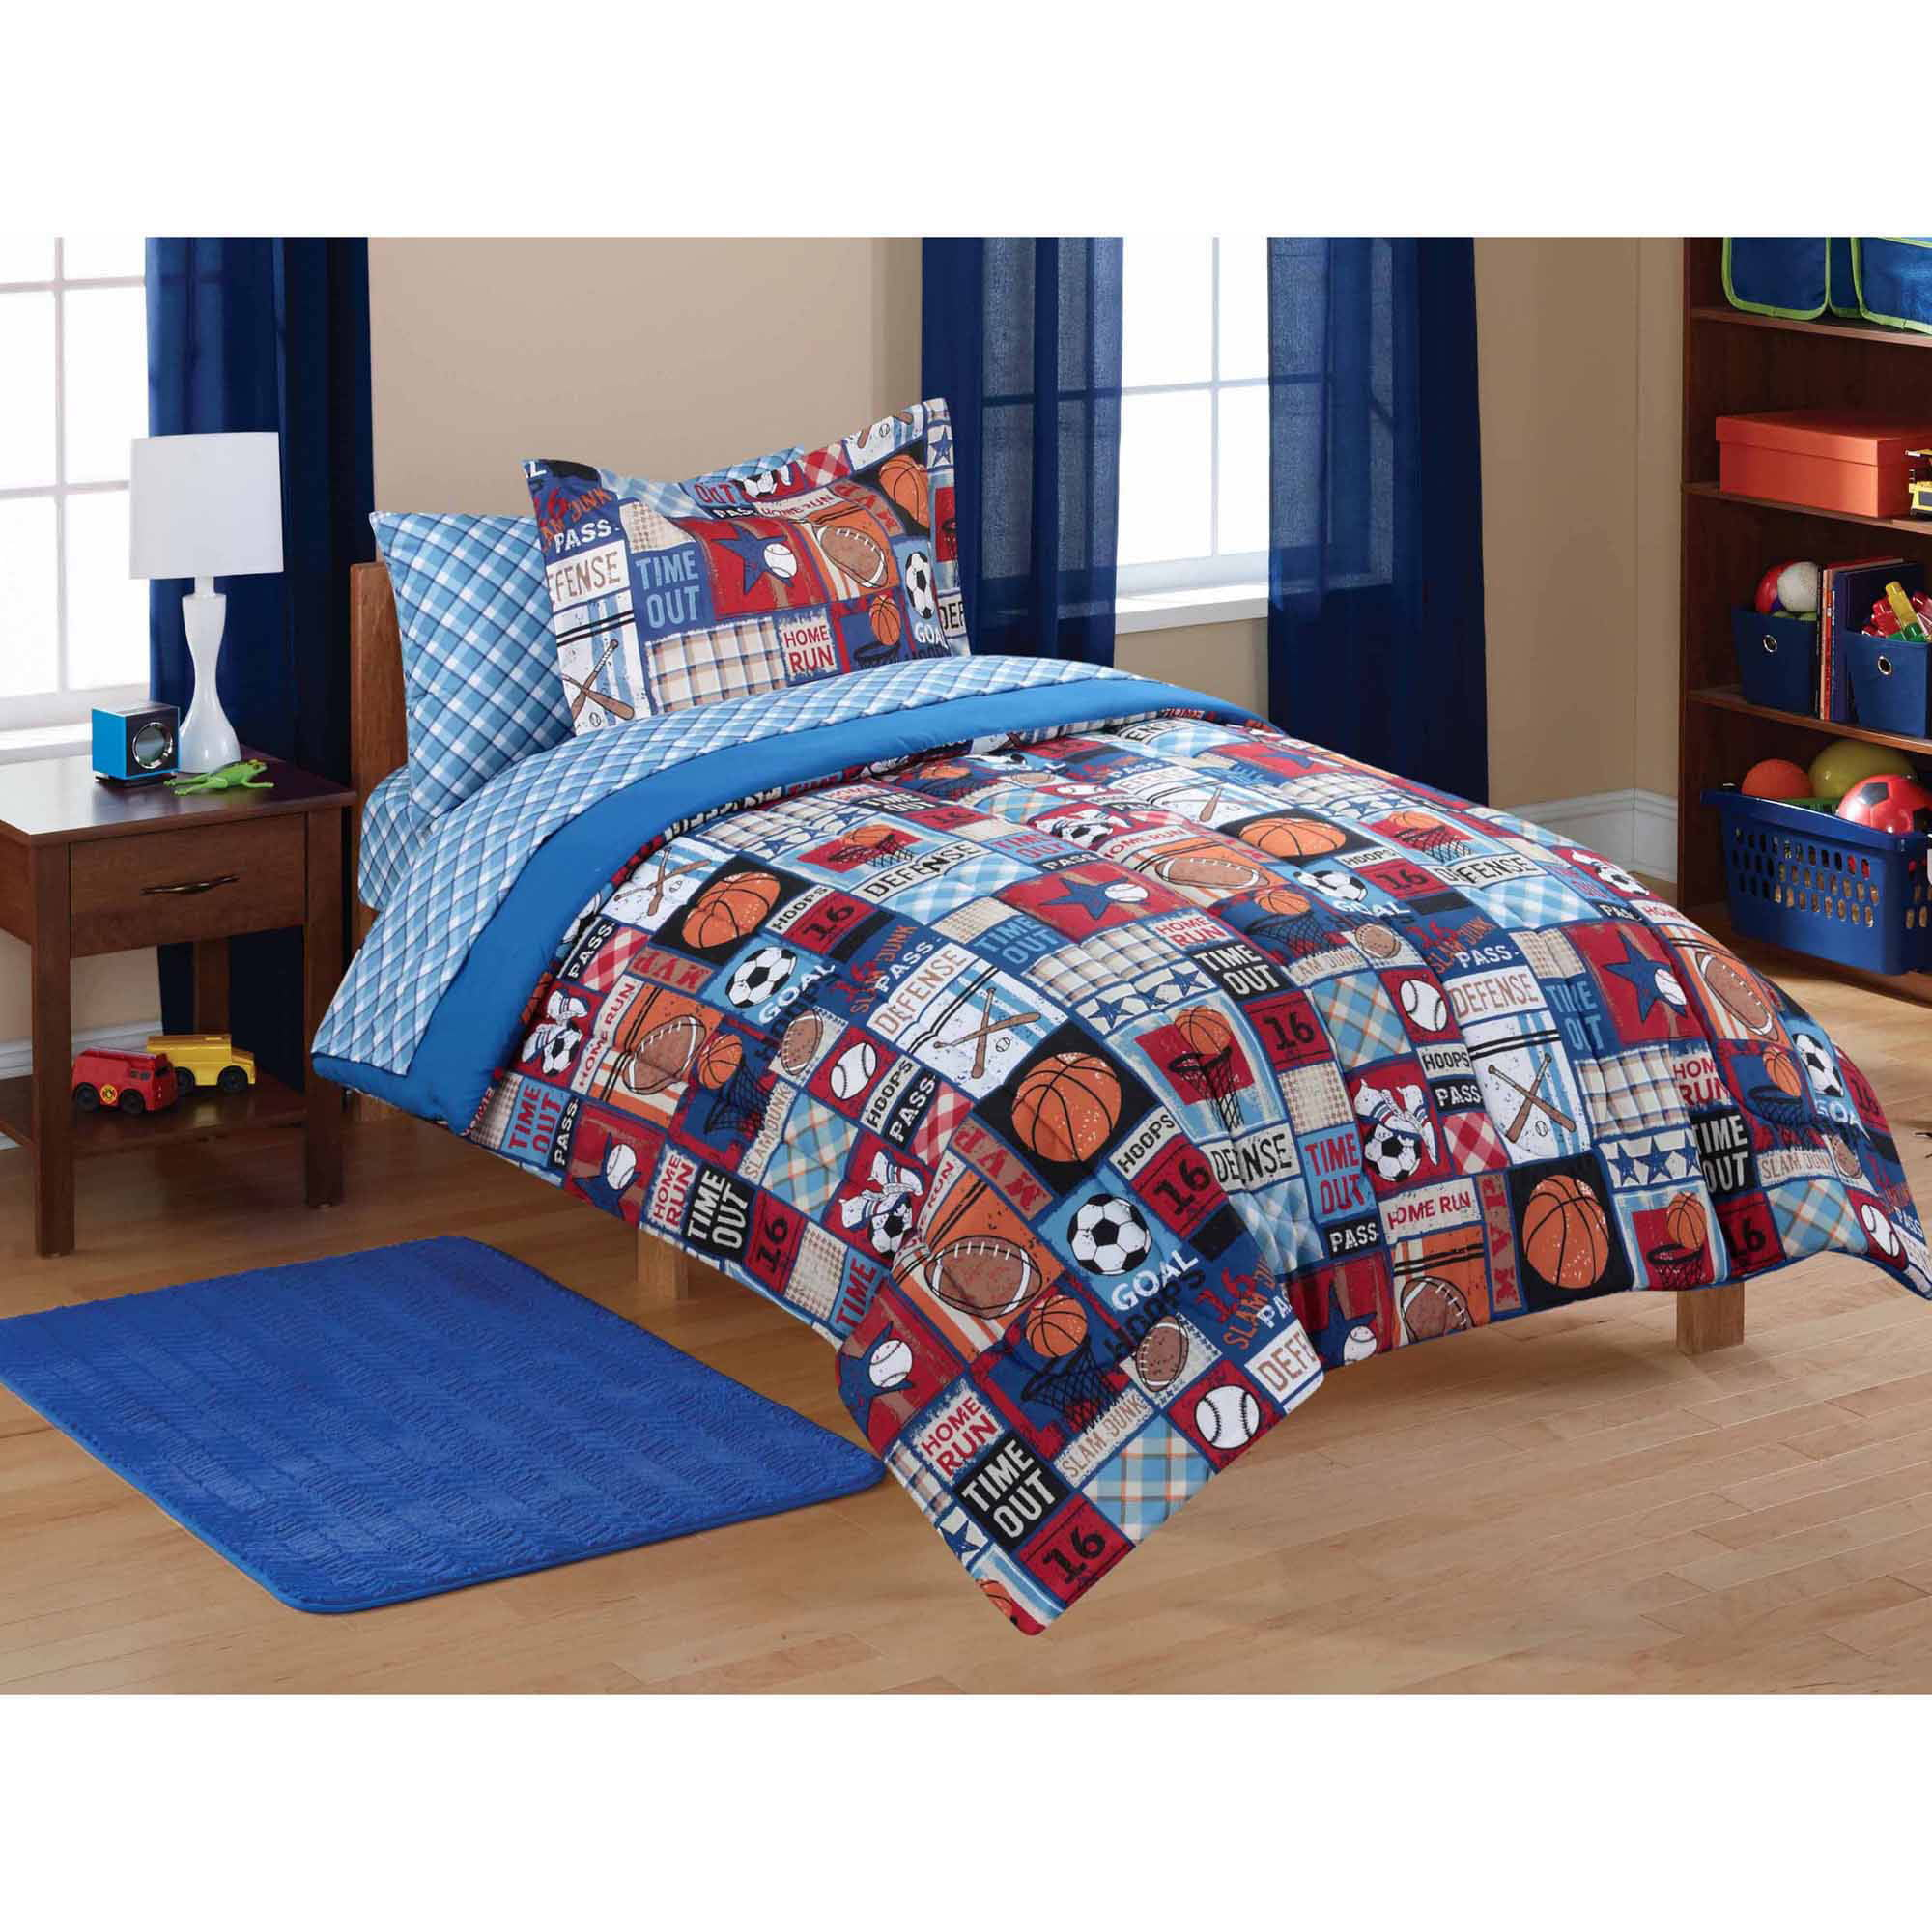 Boys sports bedding - Boys Sports Bedding